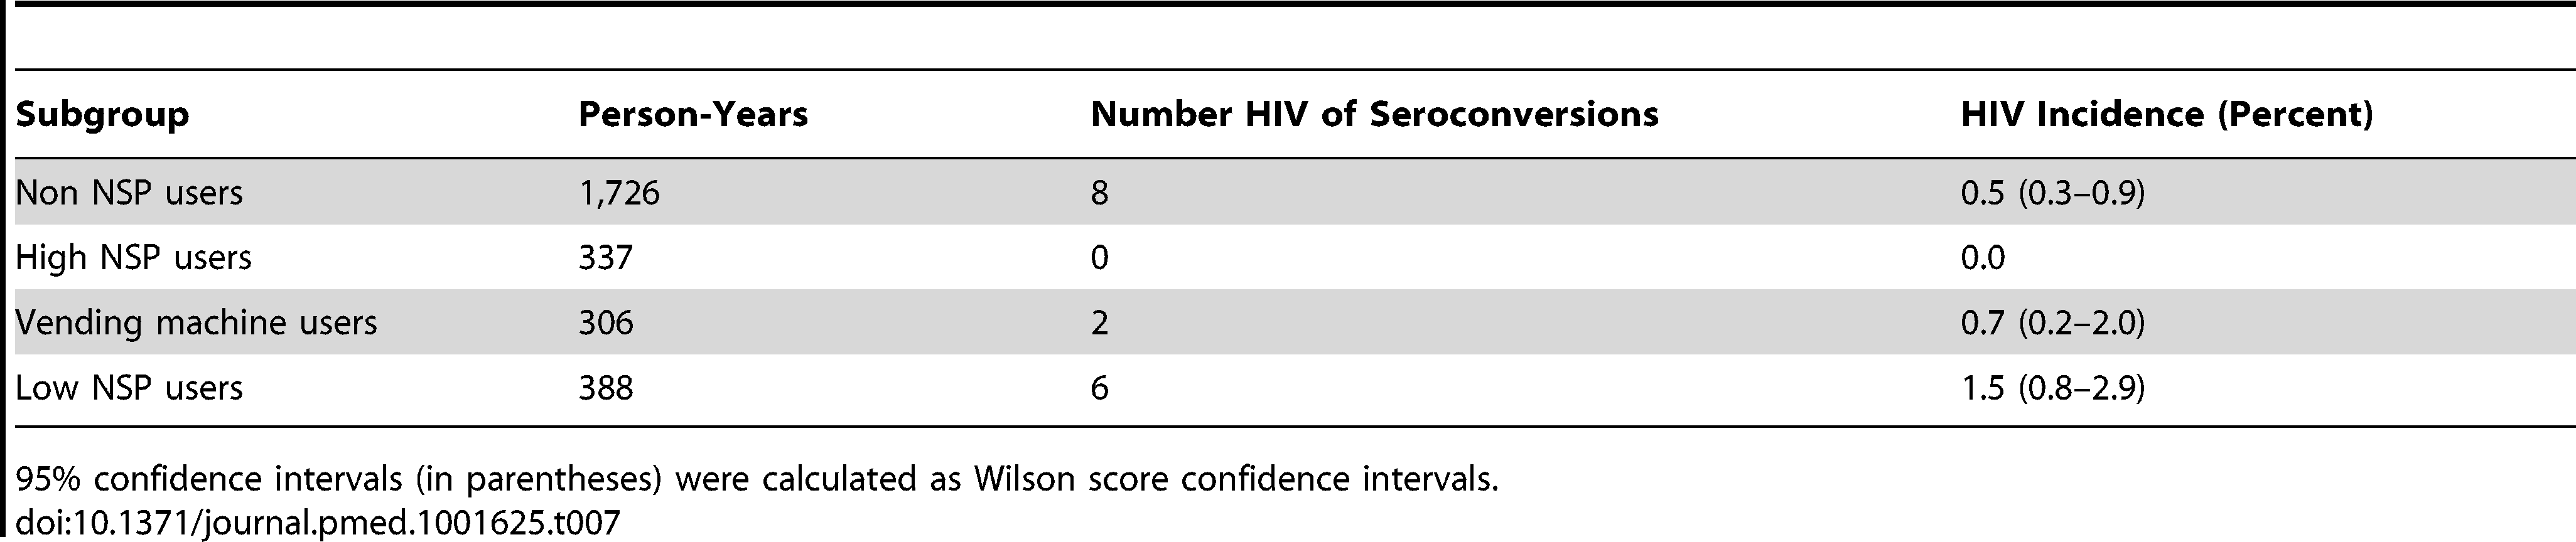 Crude HIV incidence rates among different NSP use subgroups.